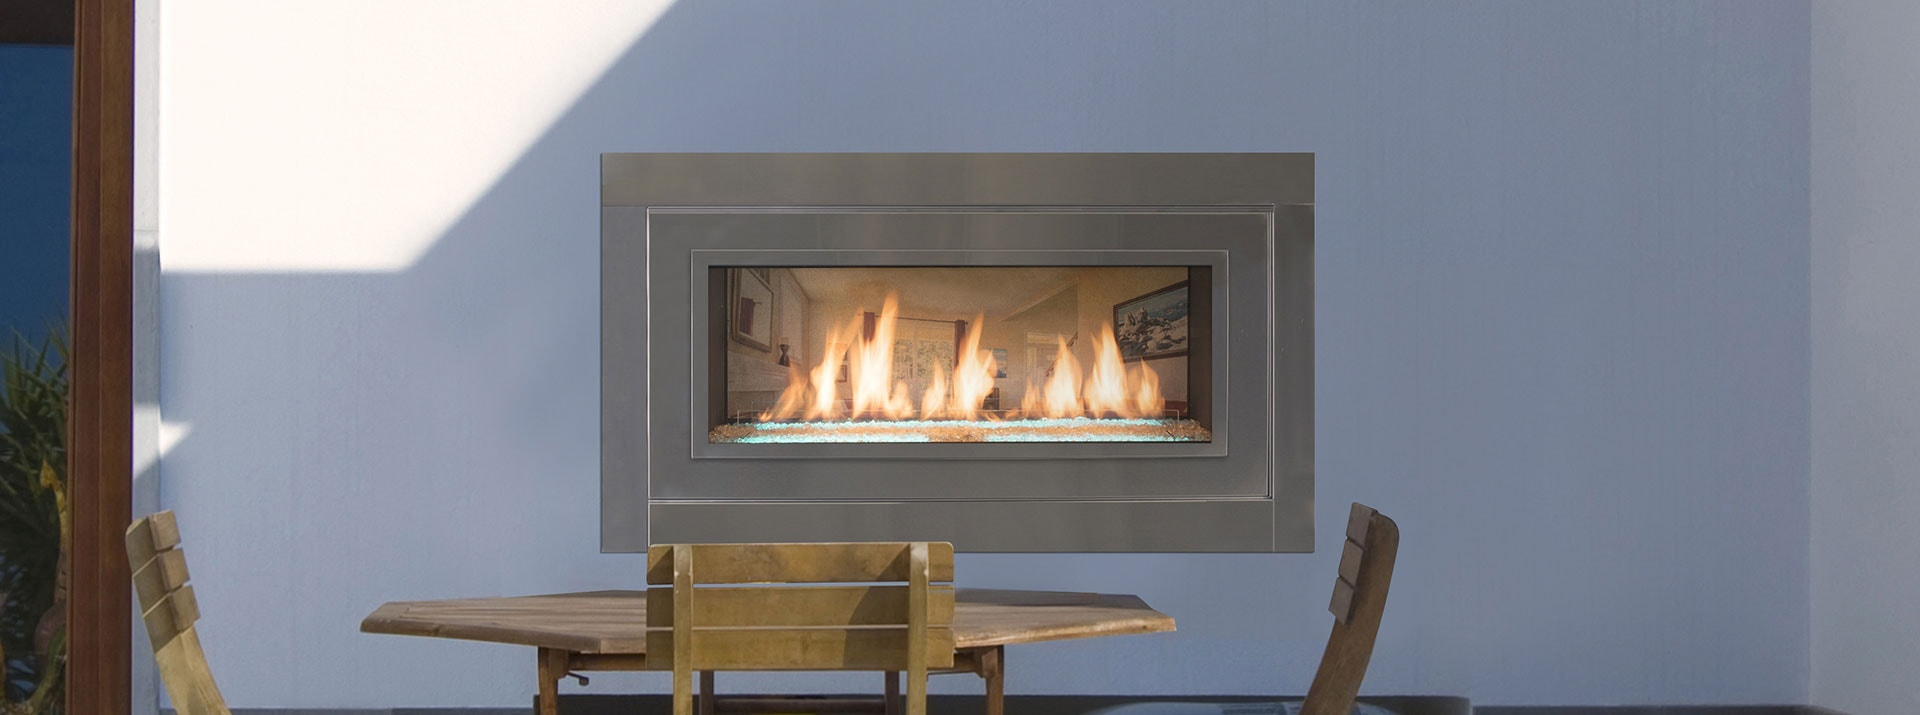 Vent Free Product Gallery Why Monessen Monessen Hearth